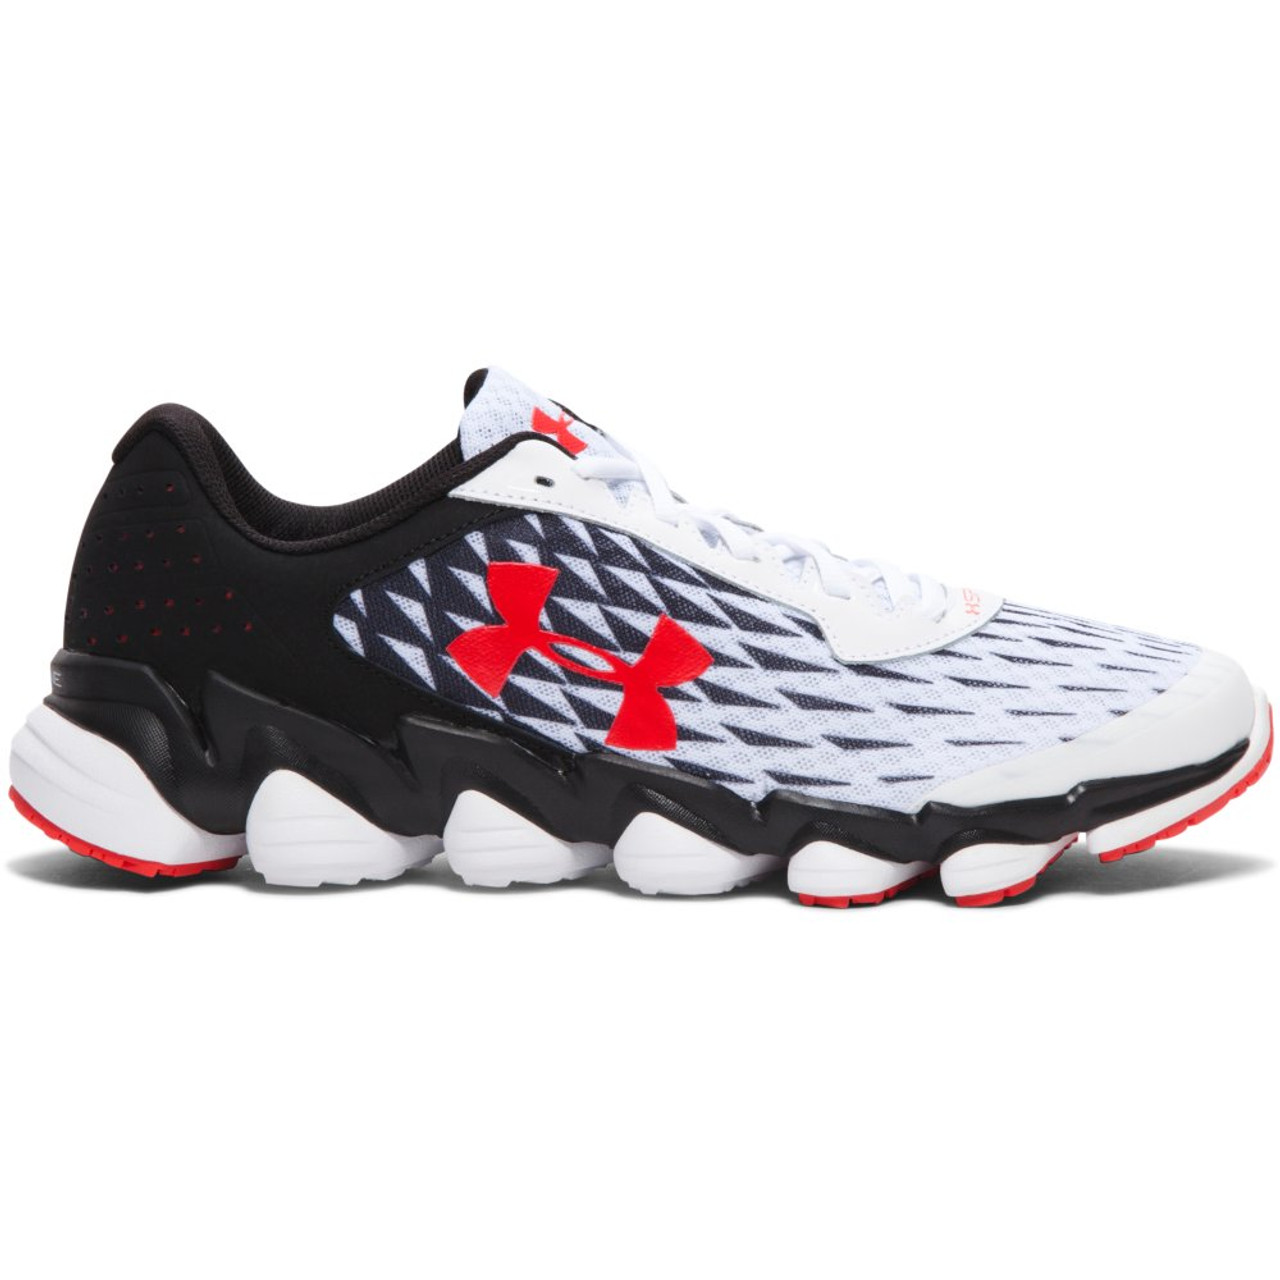 the latest 2a85e 0ce3b Men's Under Armour Spine Disrupt Running Shoe